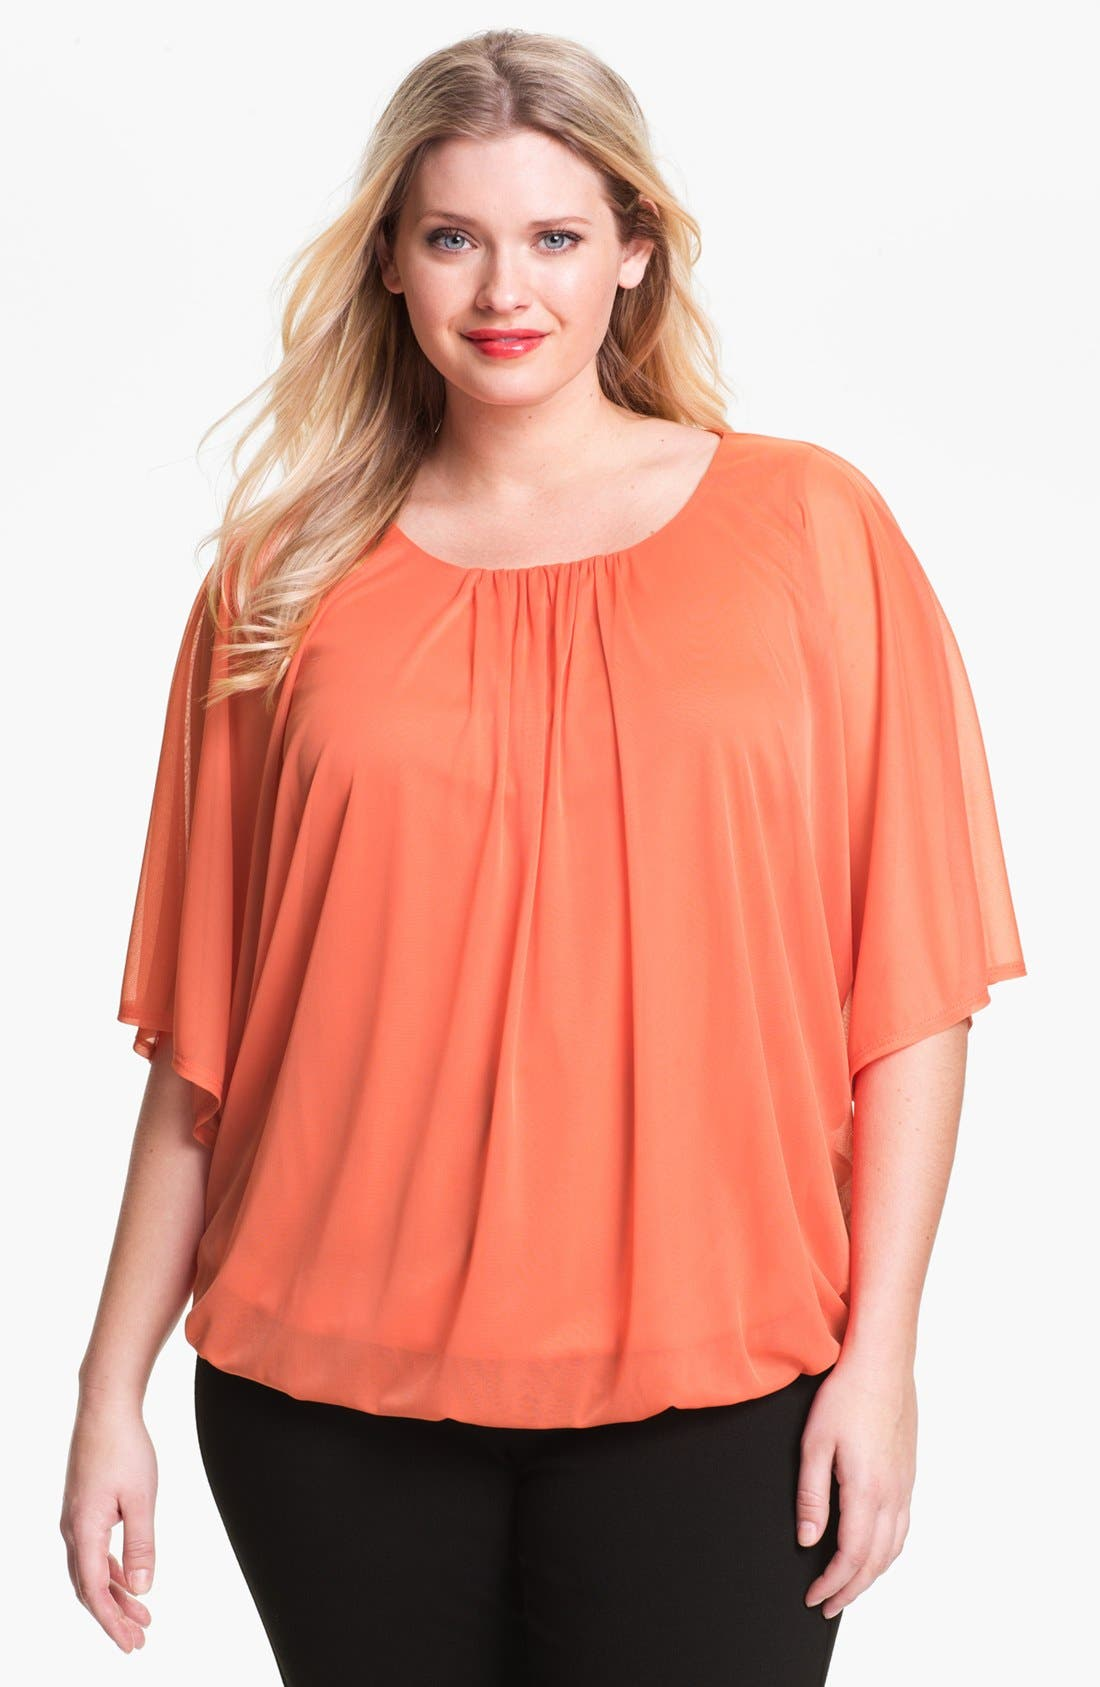 Alternate Image 1 Selected - Evans Mesh Bubble Top (Plus Size)